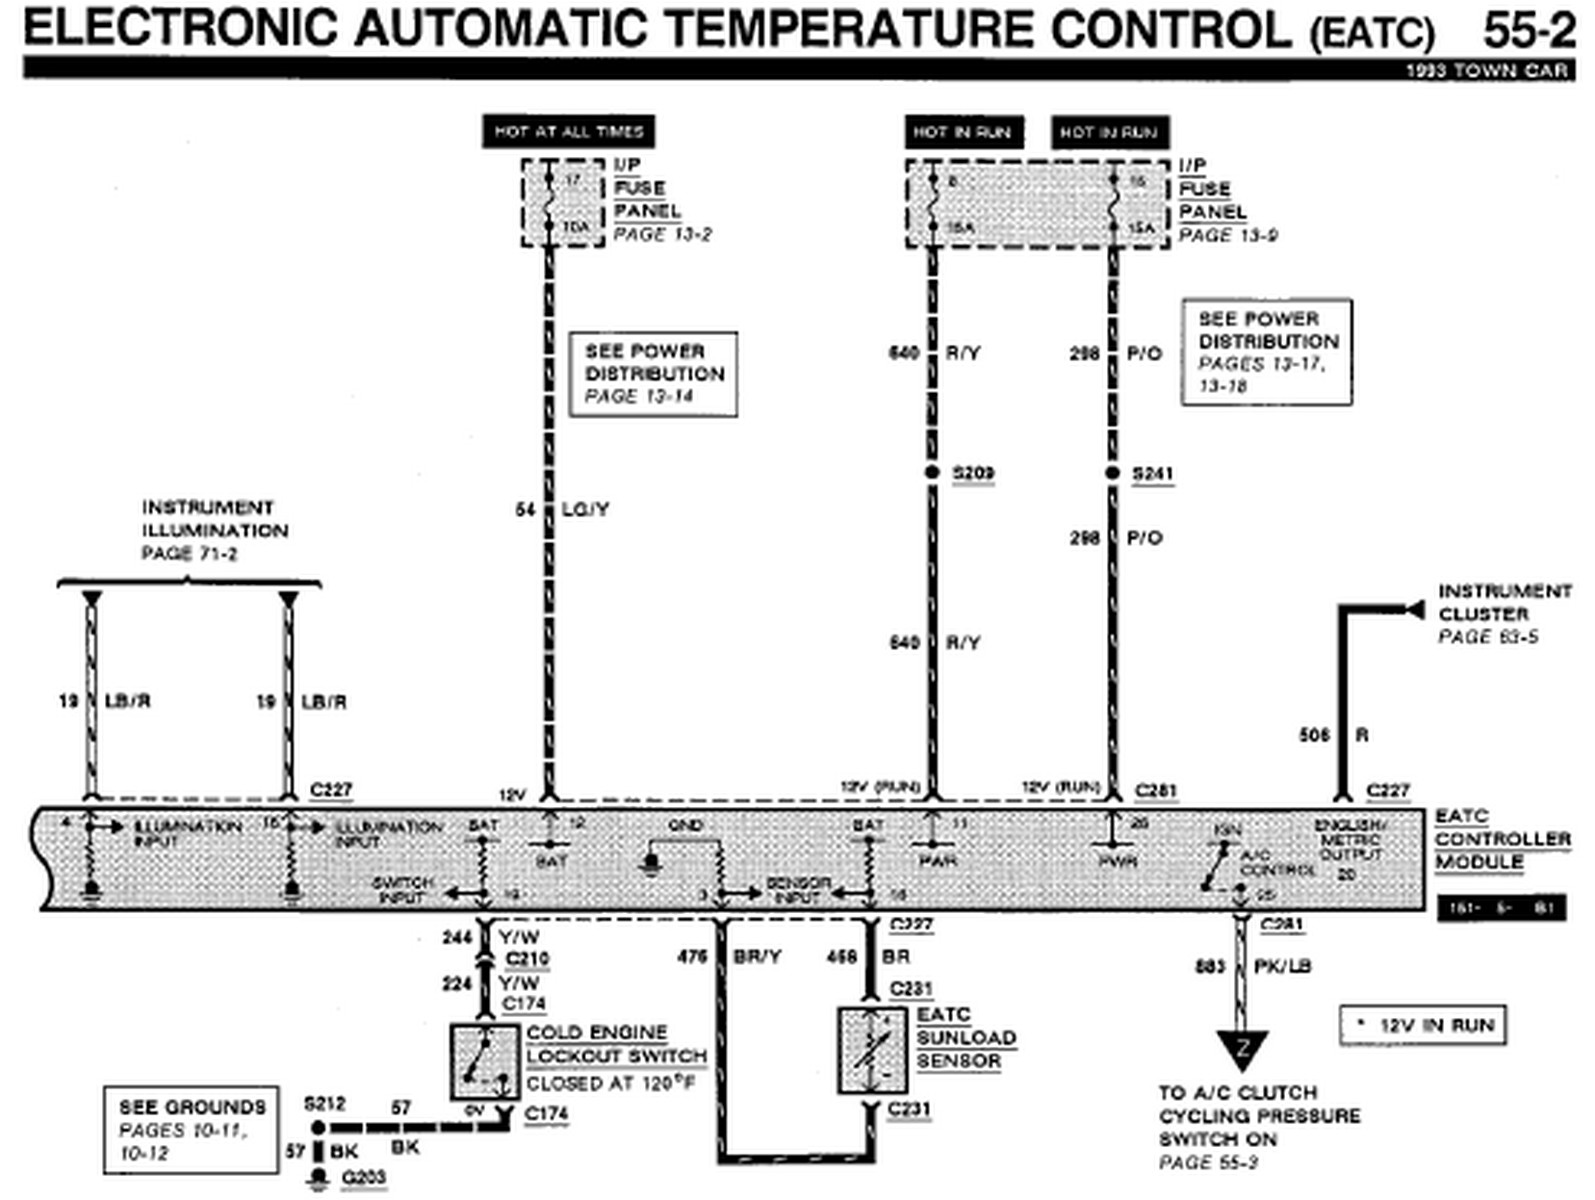 1993 lincoln town car wiring schematic 1993 lincoln town car eatc wiring diagram | auto wiring ... 1993 lincoln town car wiring diagram